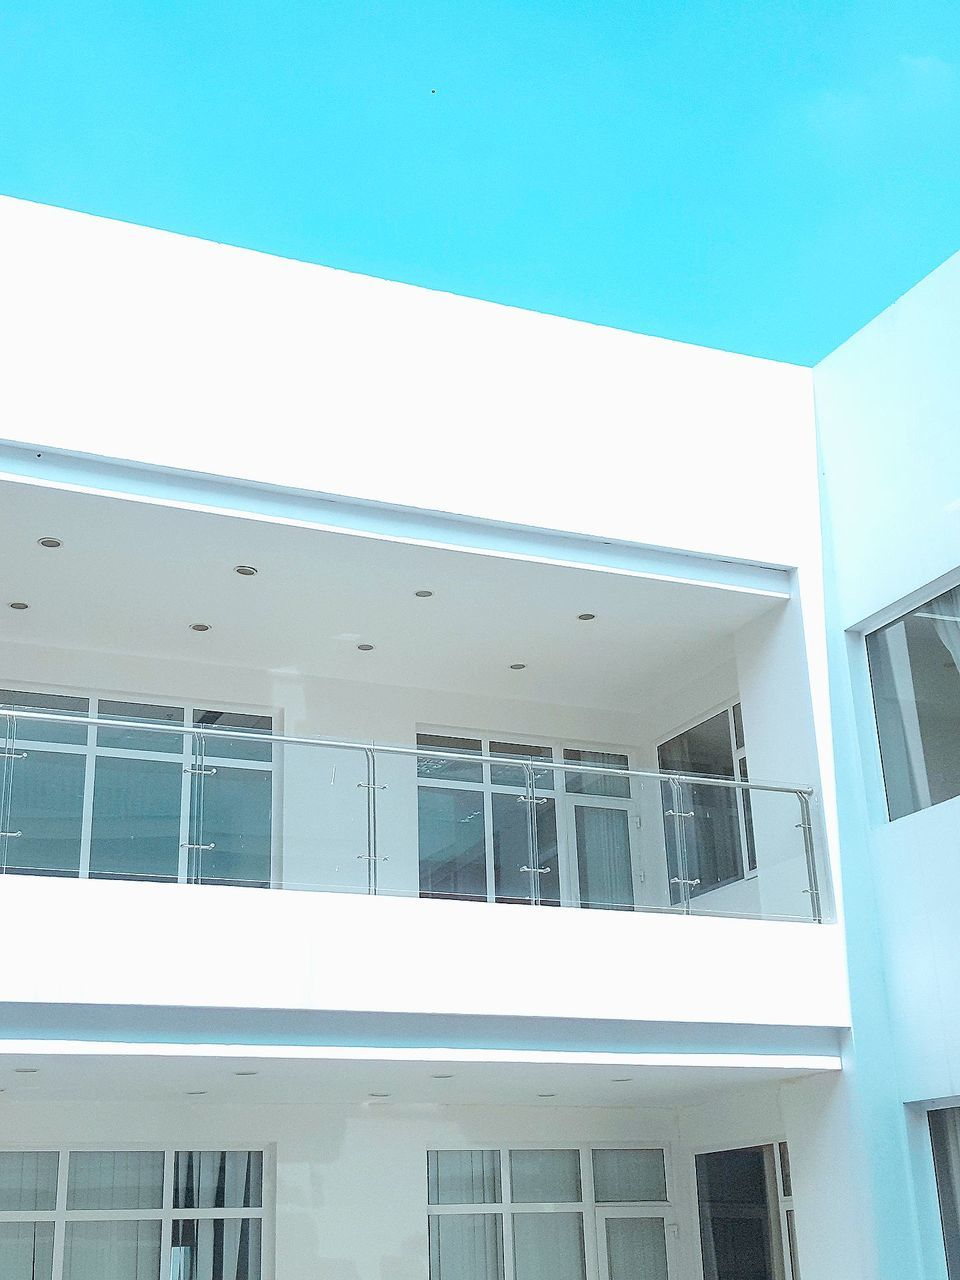 architecture, window, built structure, building exterior, no people, day, low angle view, outdoors, modern